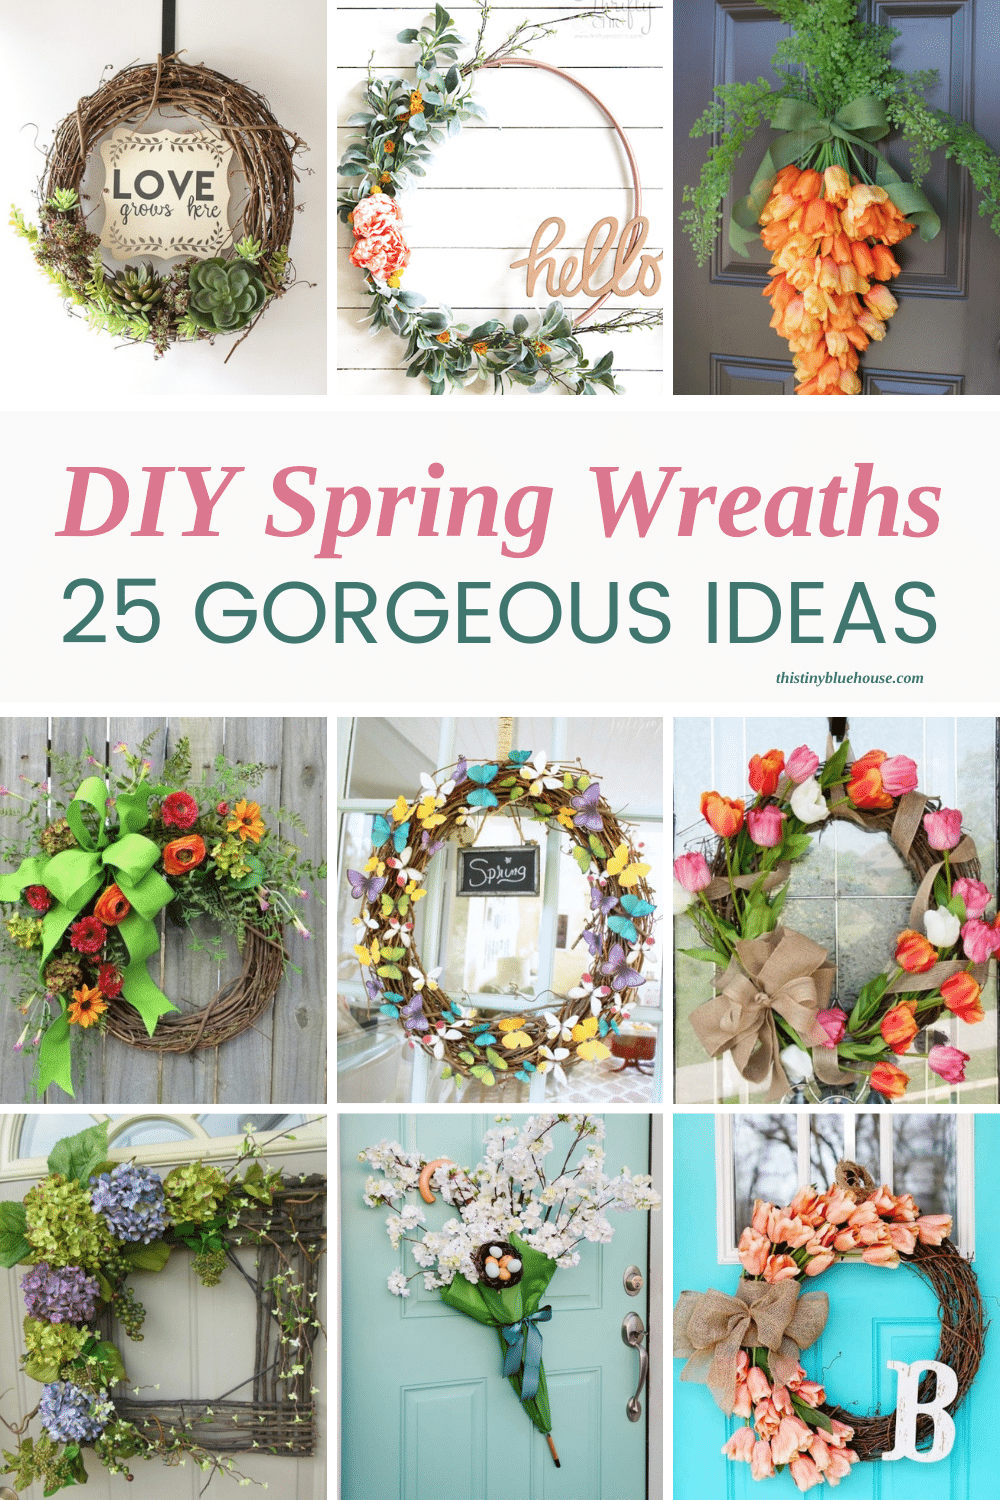 Celebrate the end of snow and return of green grass and beautiful flowers by making one of these gorgeous DIY spring wreaths. Made with simple materials these gorgeous DIY spring wreaths are the perfect way to make your front door pretty this spring.